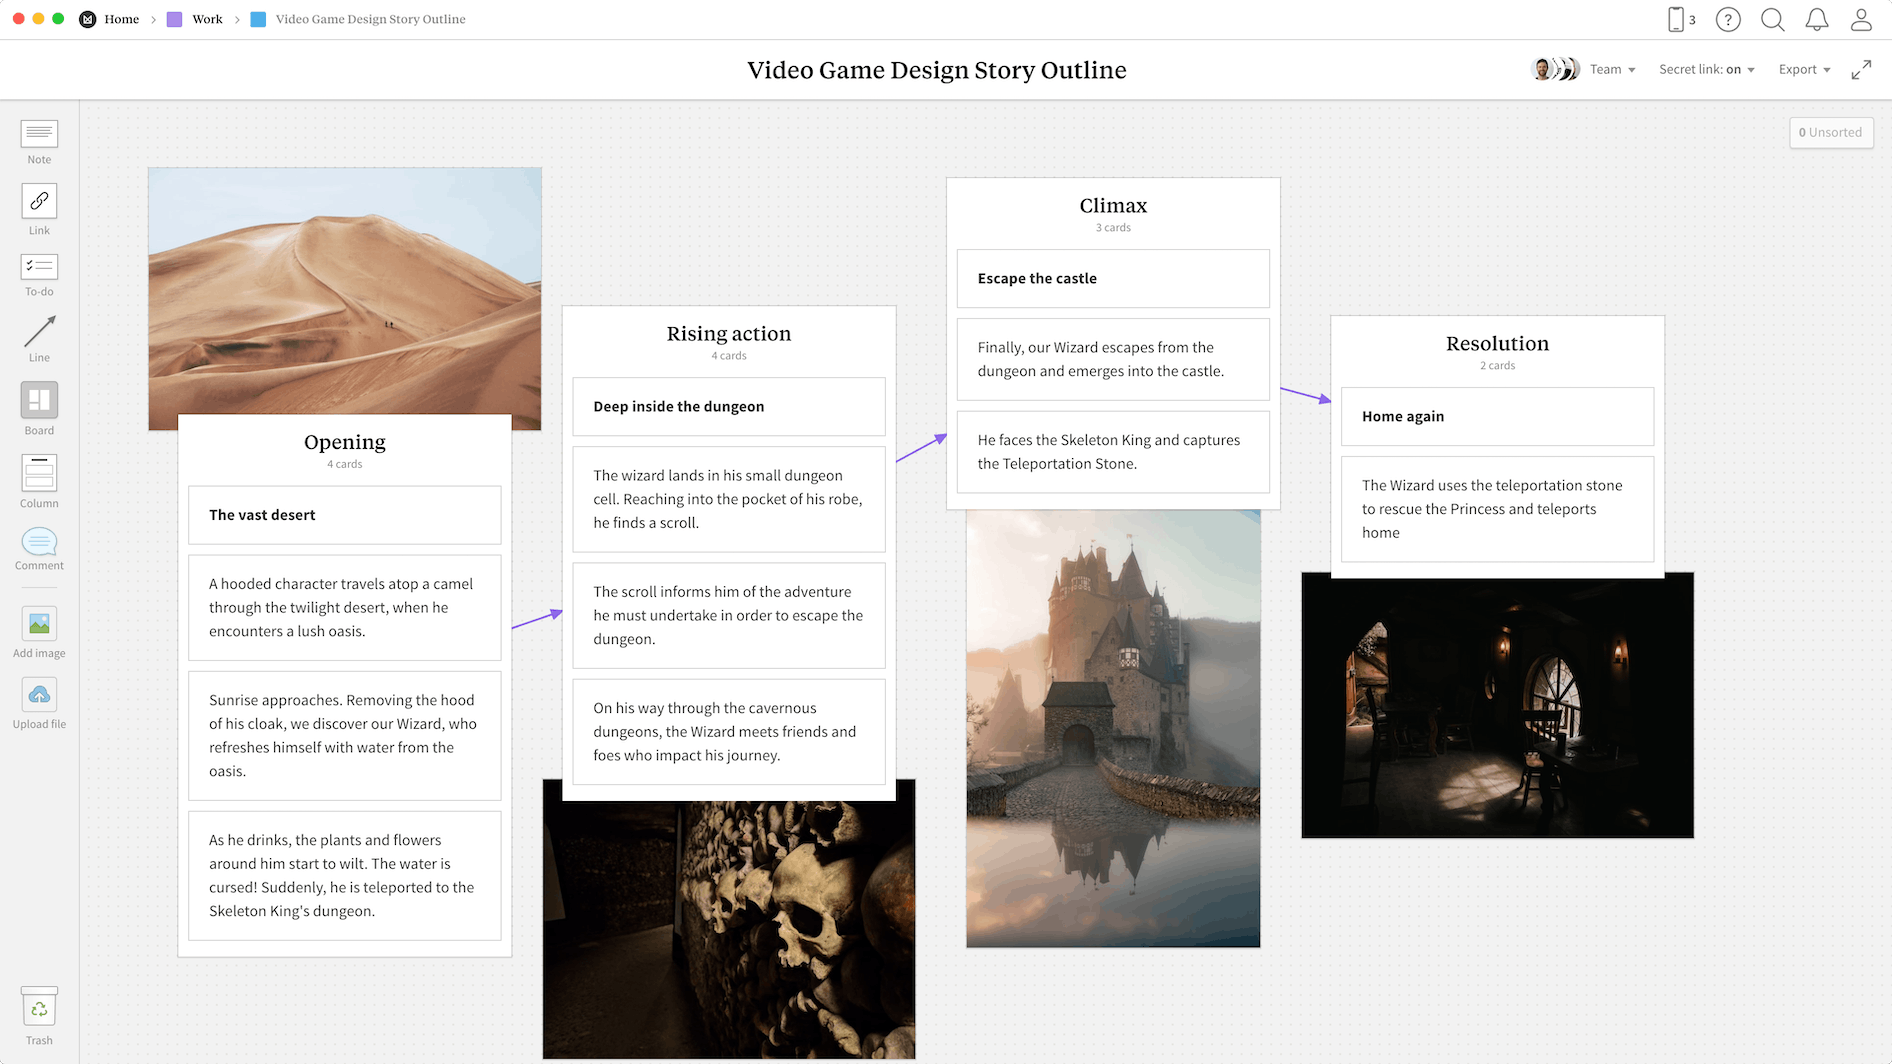 Game Design Story Outline Template, within the Milanote app